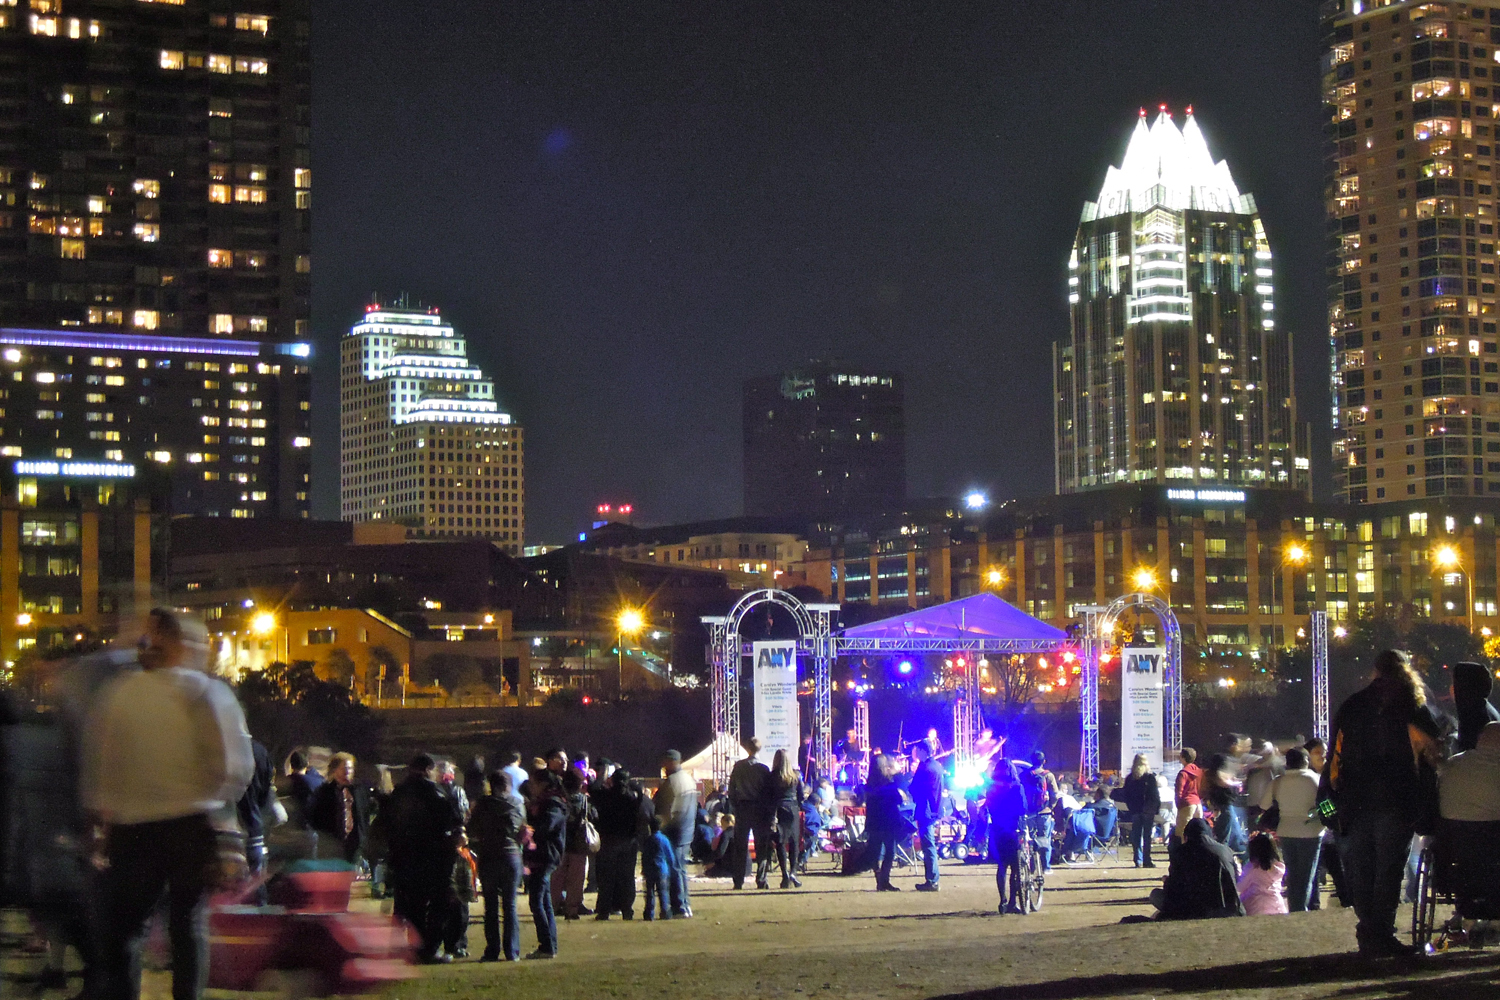 As Austin celebrates a new year, market analysts are looking for improvement from a tough 2016.